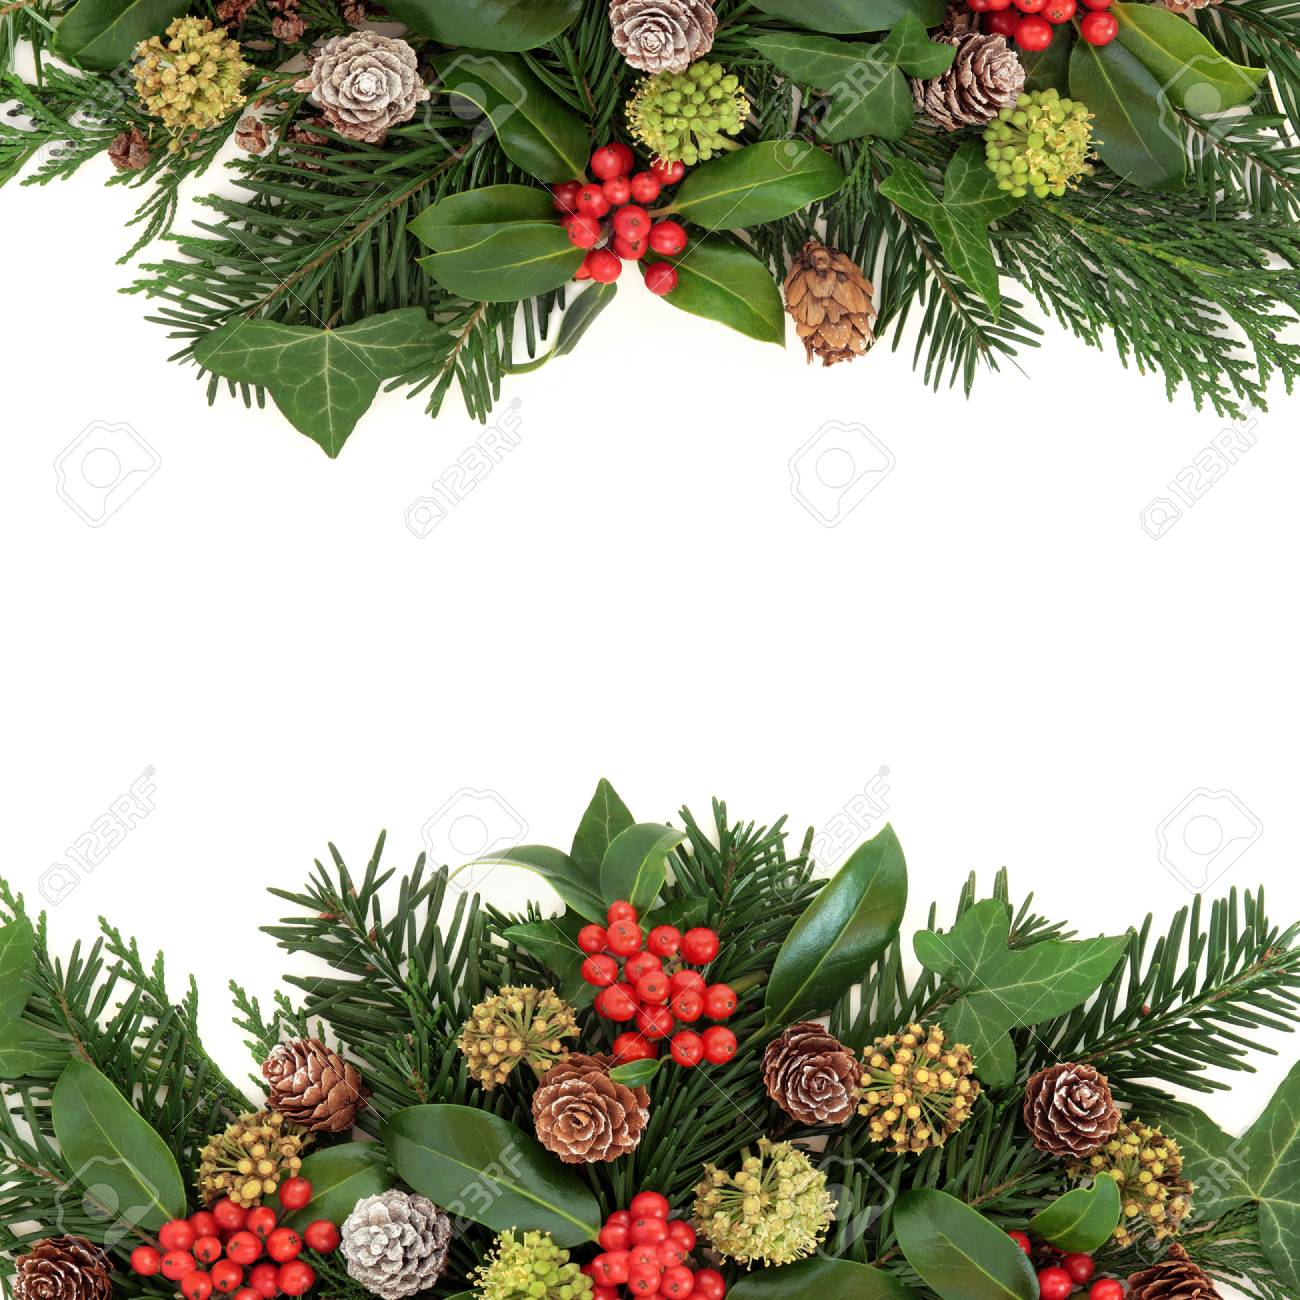 Christmas Greenery.Winter And Christmas Greenery Border With Holly Ivy Pine Cones